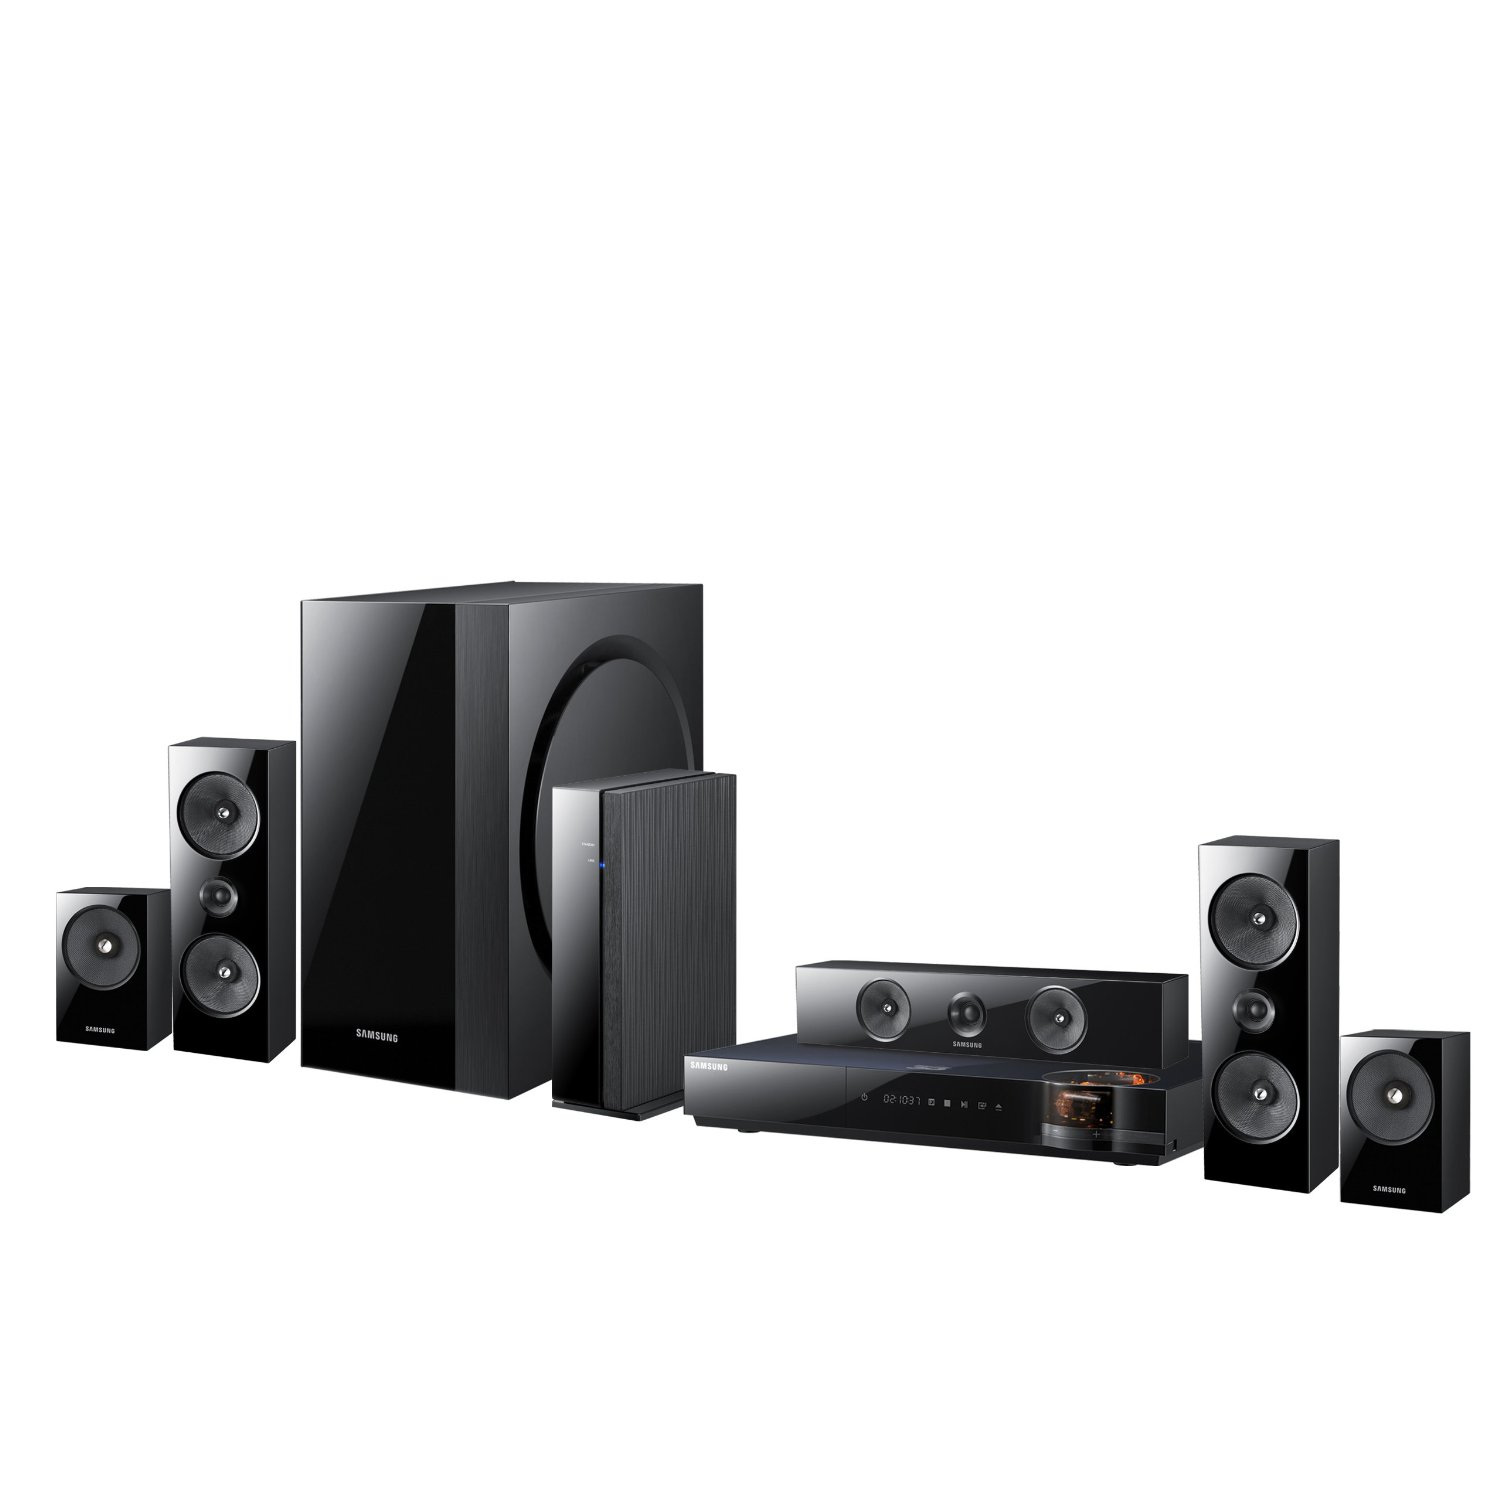 the gallery for sony home theater wireless rear speakers. Black Bedroom Furniture Sets. Home Design Ideas